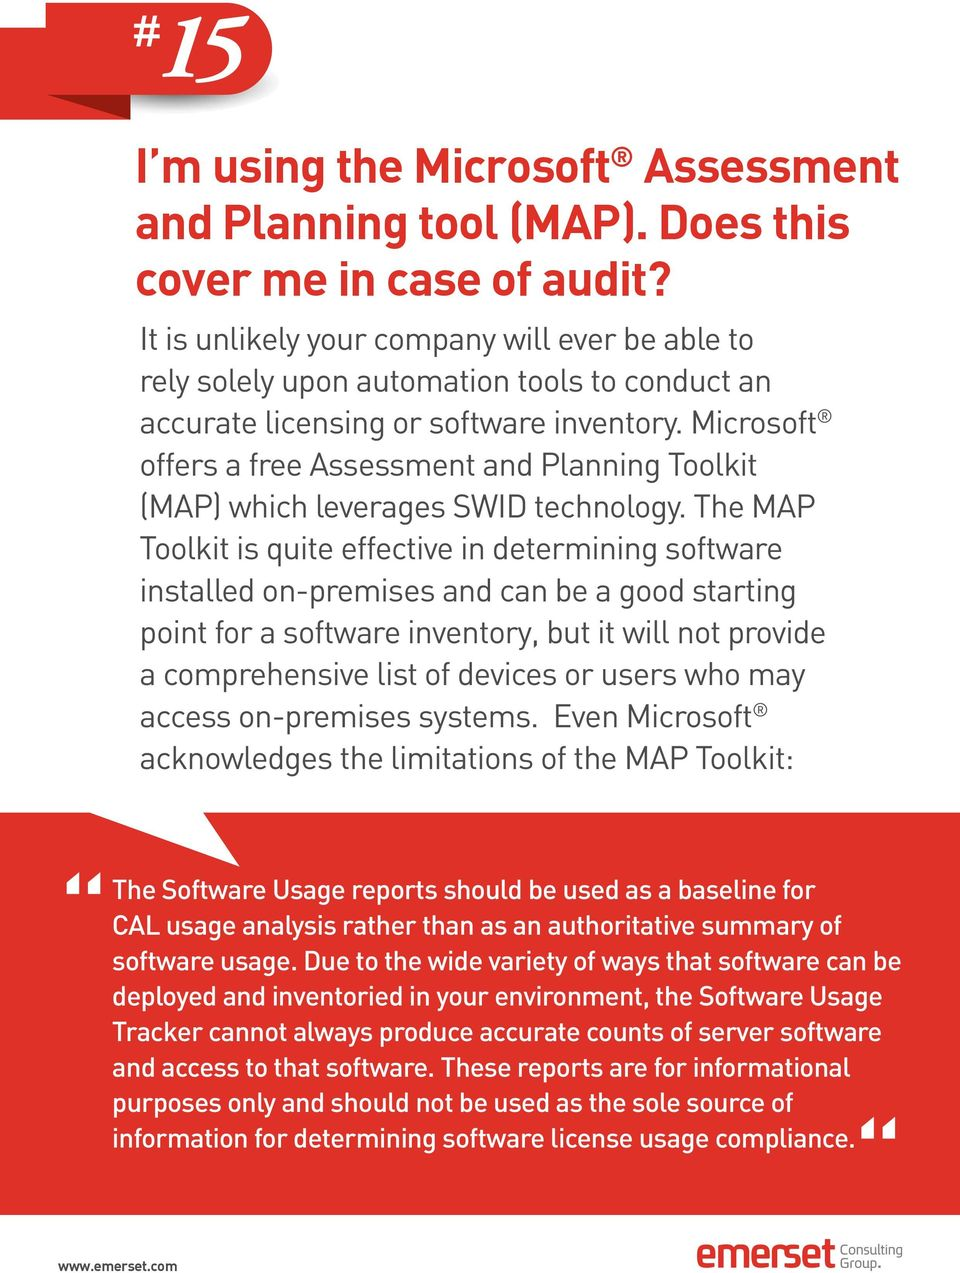 Microsoft offers a free Assessment and Planning Toolkit (MAP) which leverages SWID technology.